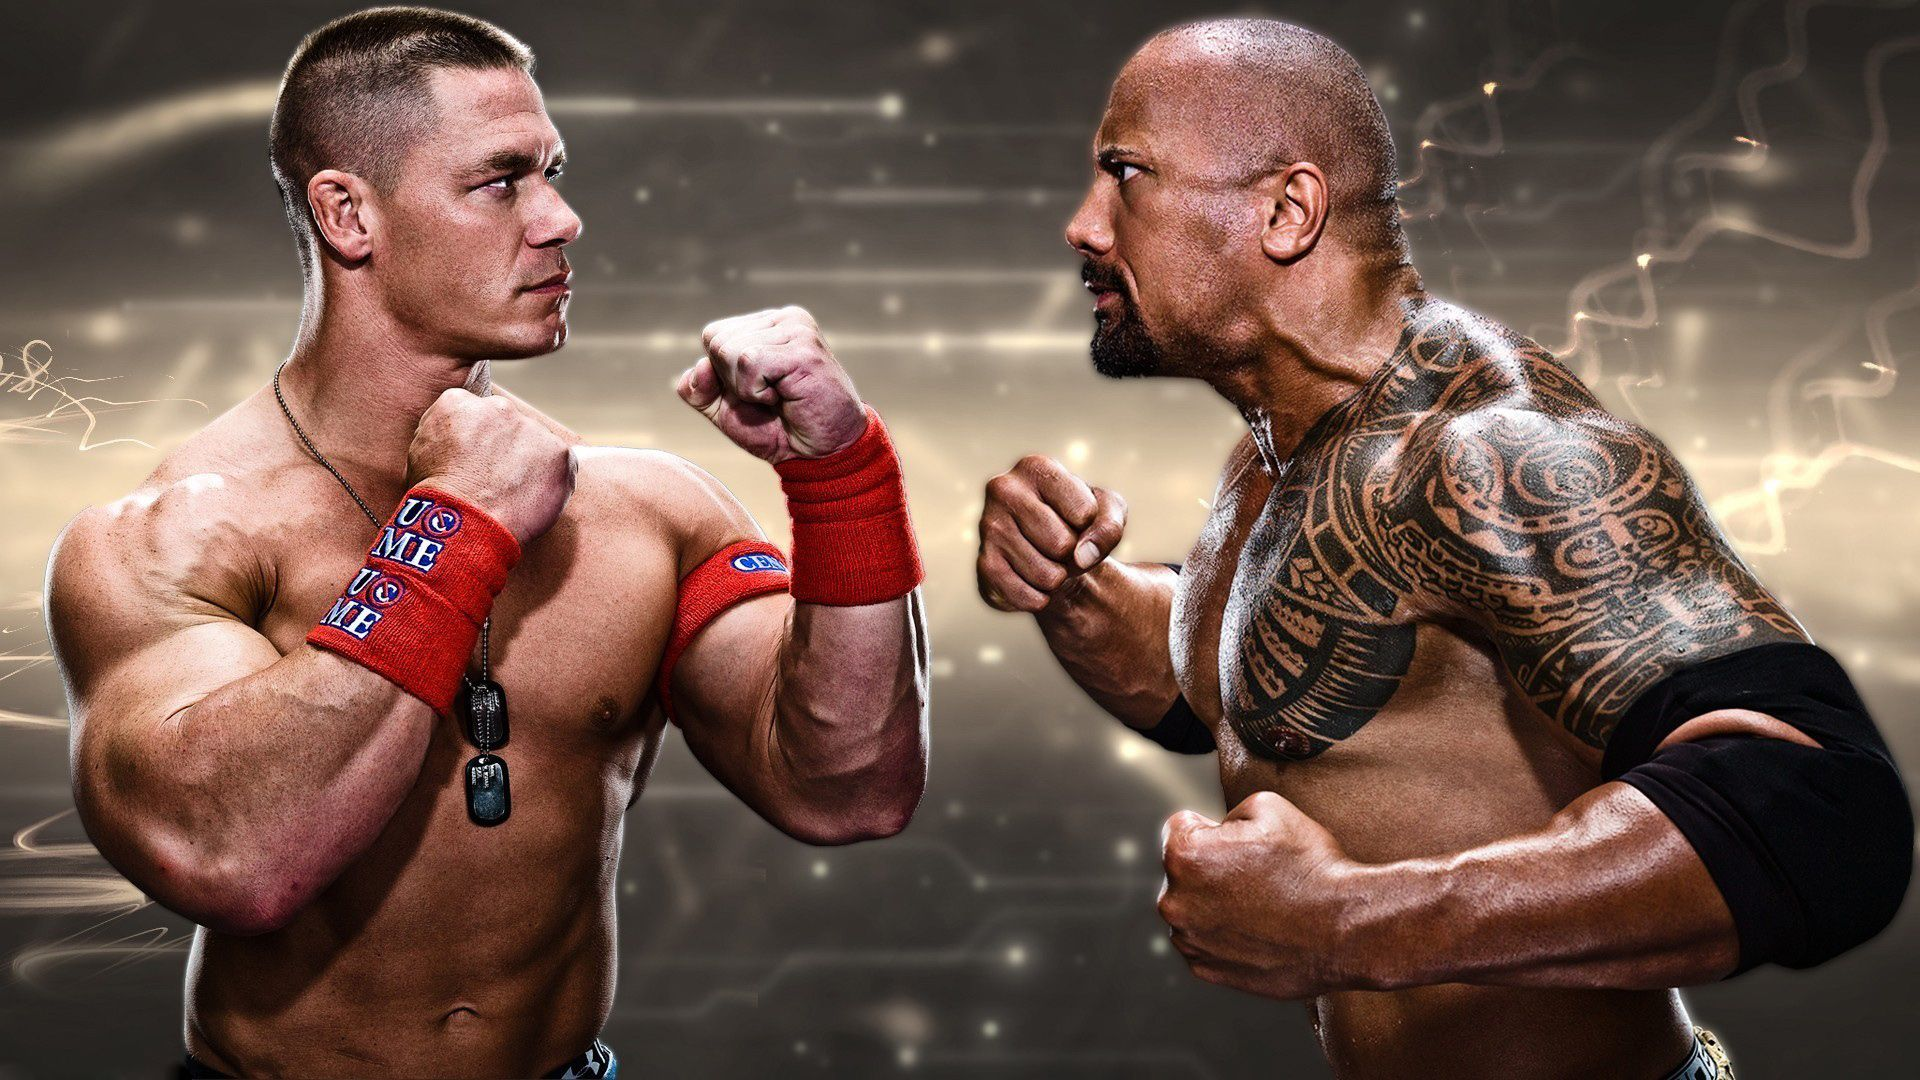 WWE Raw Wallpapers, Widescreen High Resolution Wallpapers